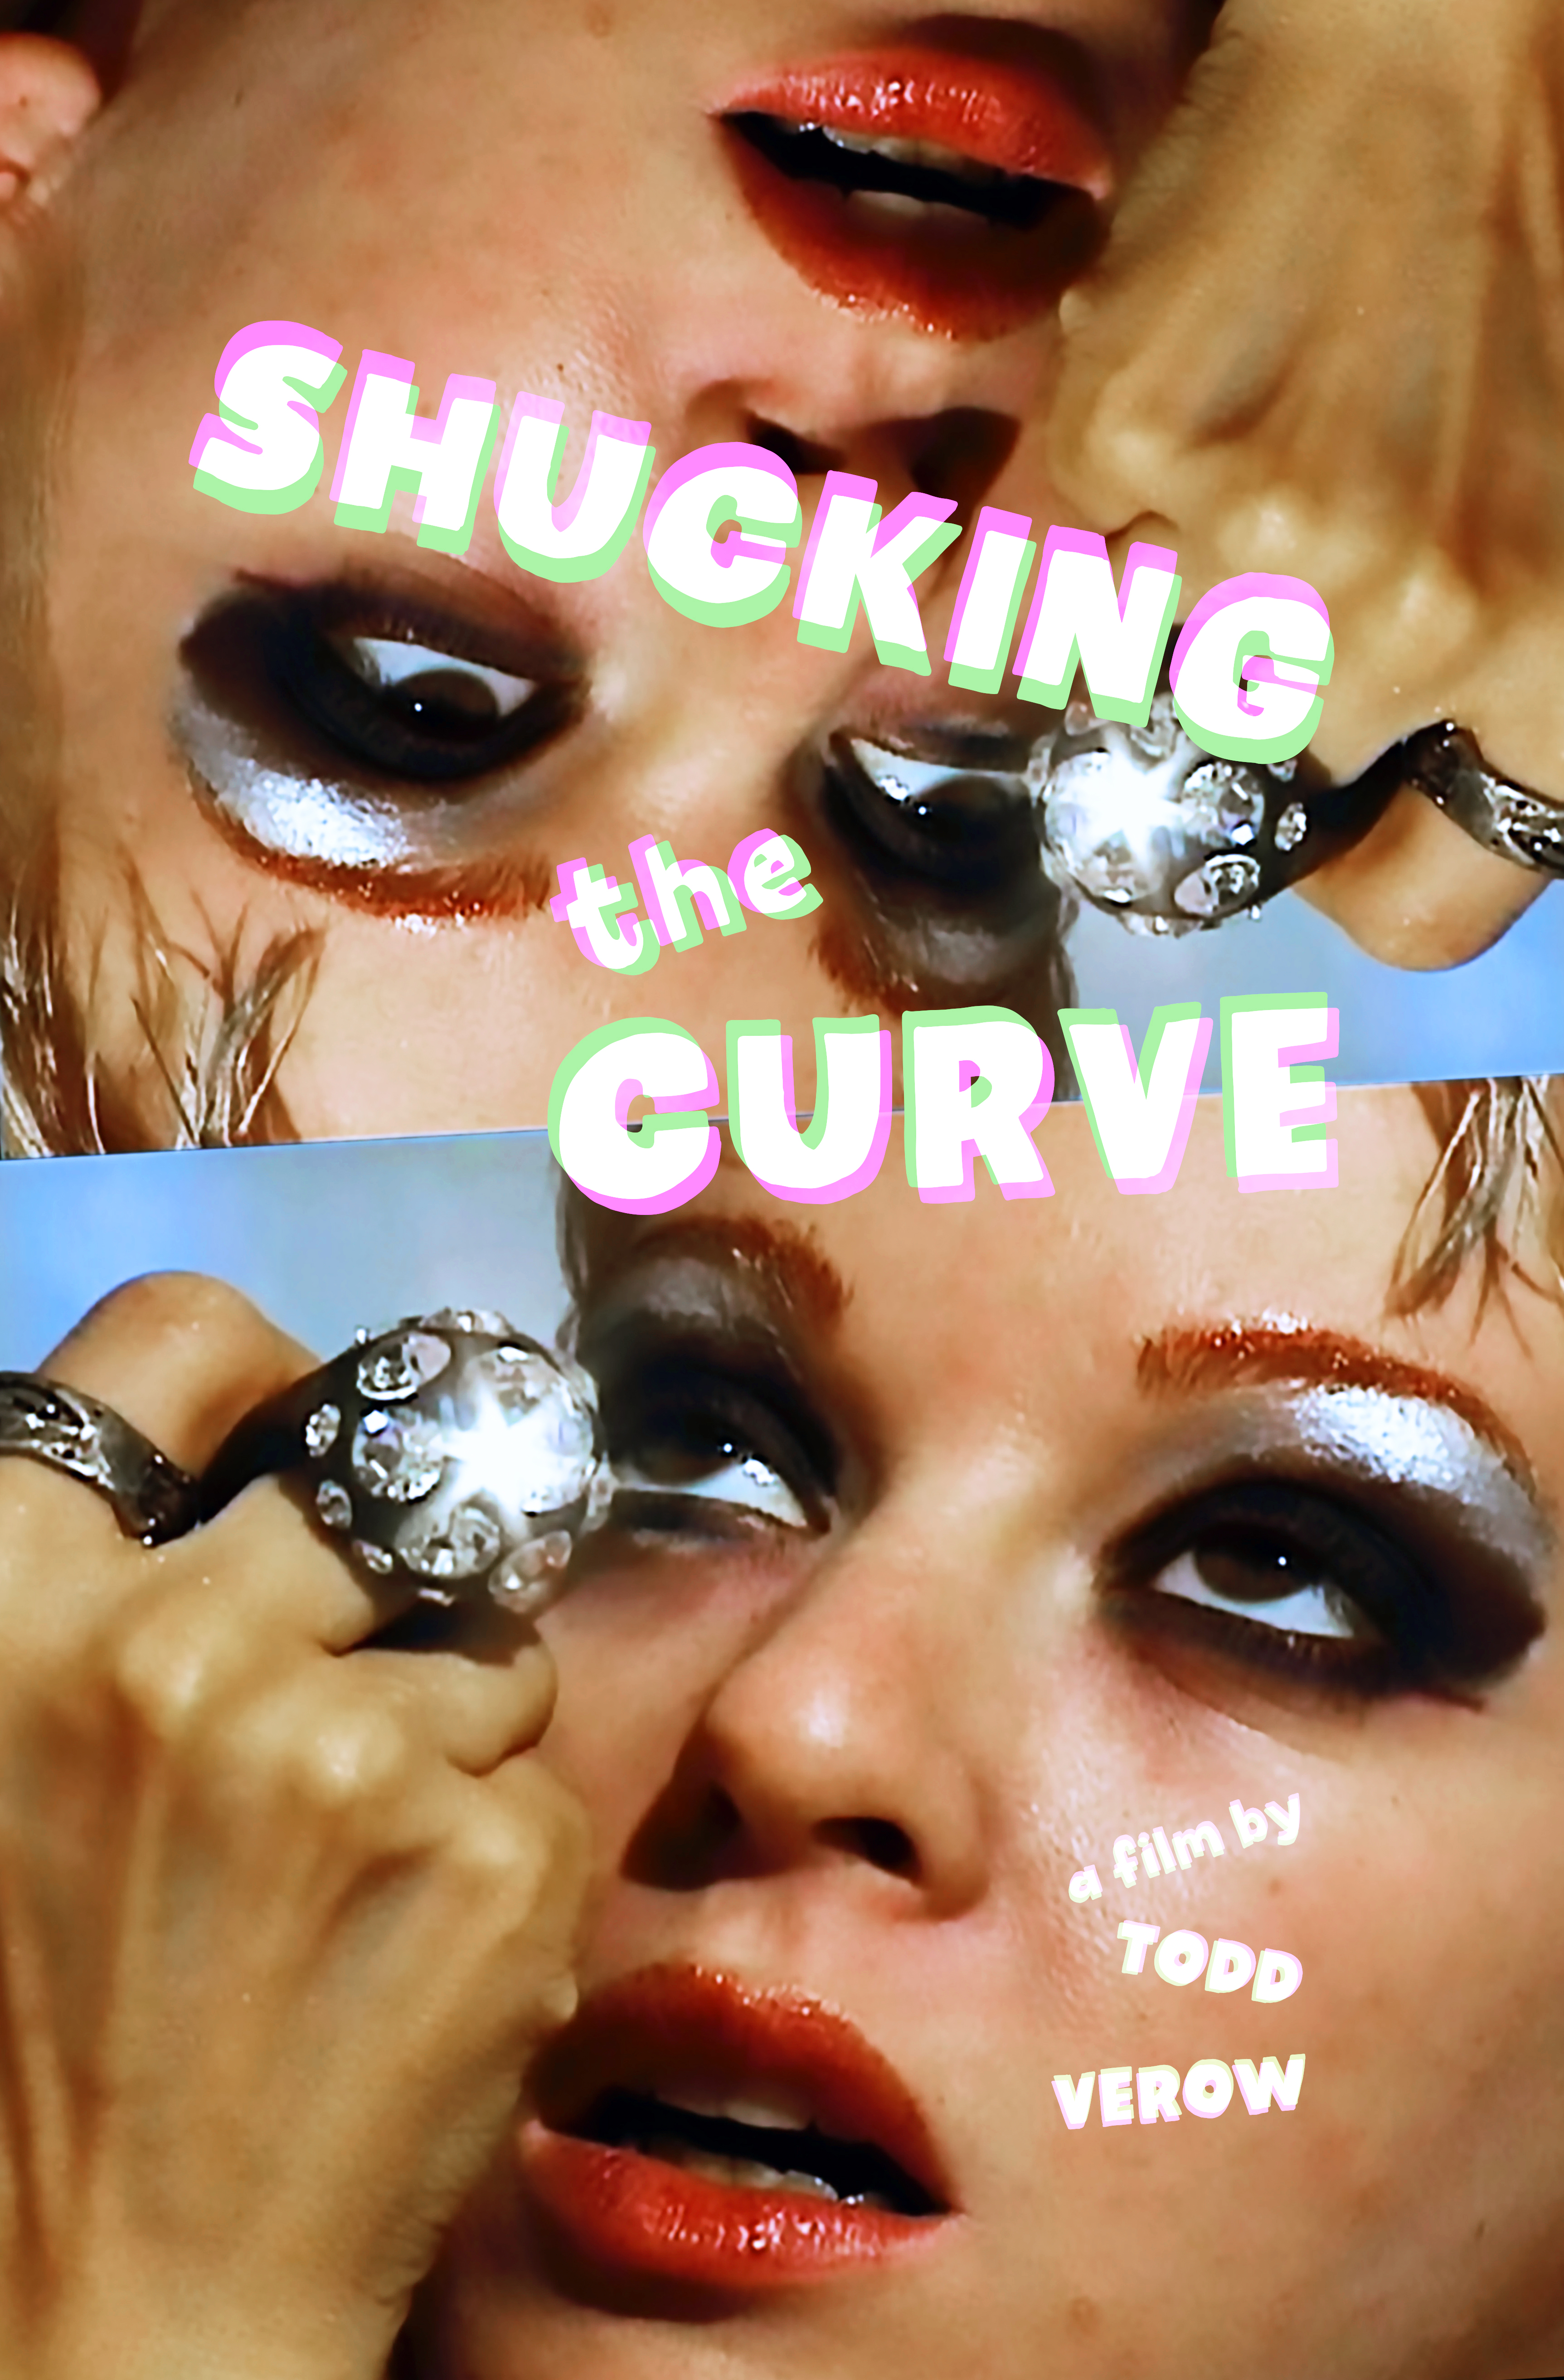 Shucking the Curve (1998)